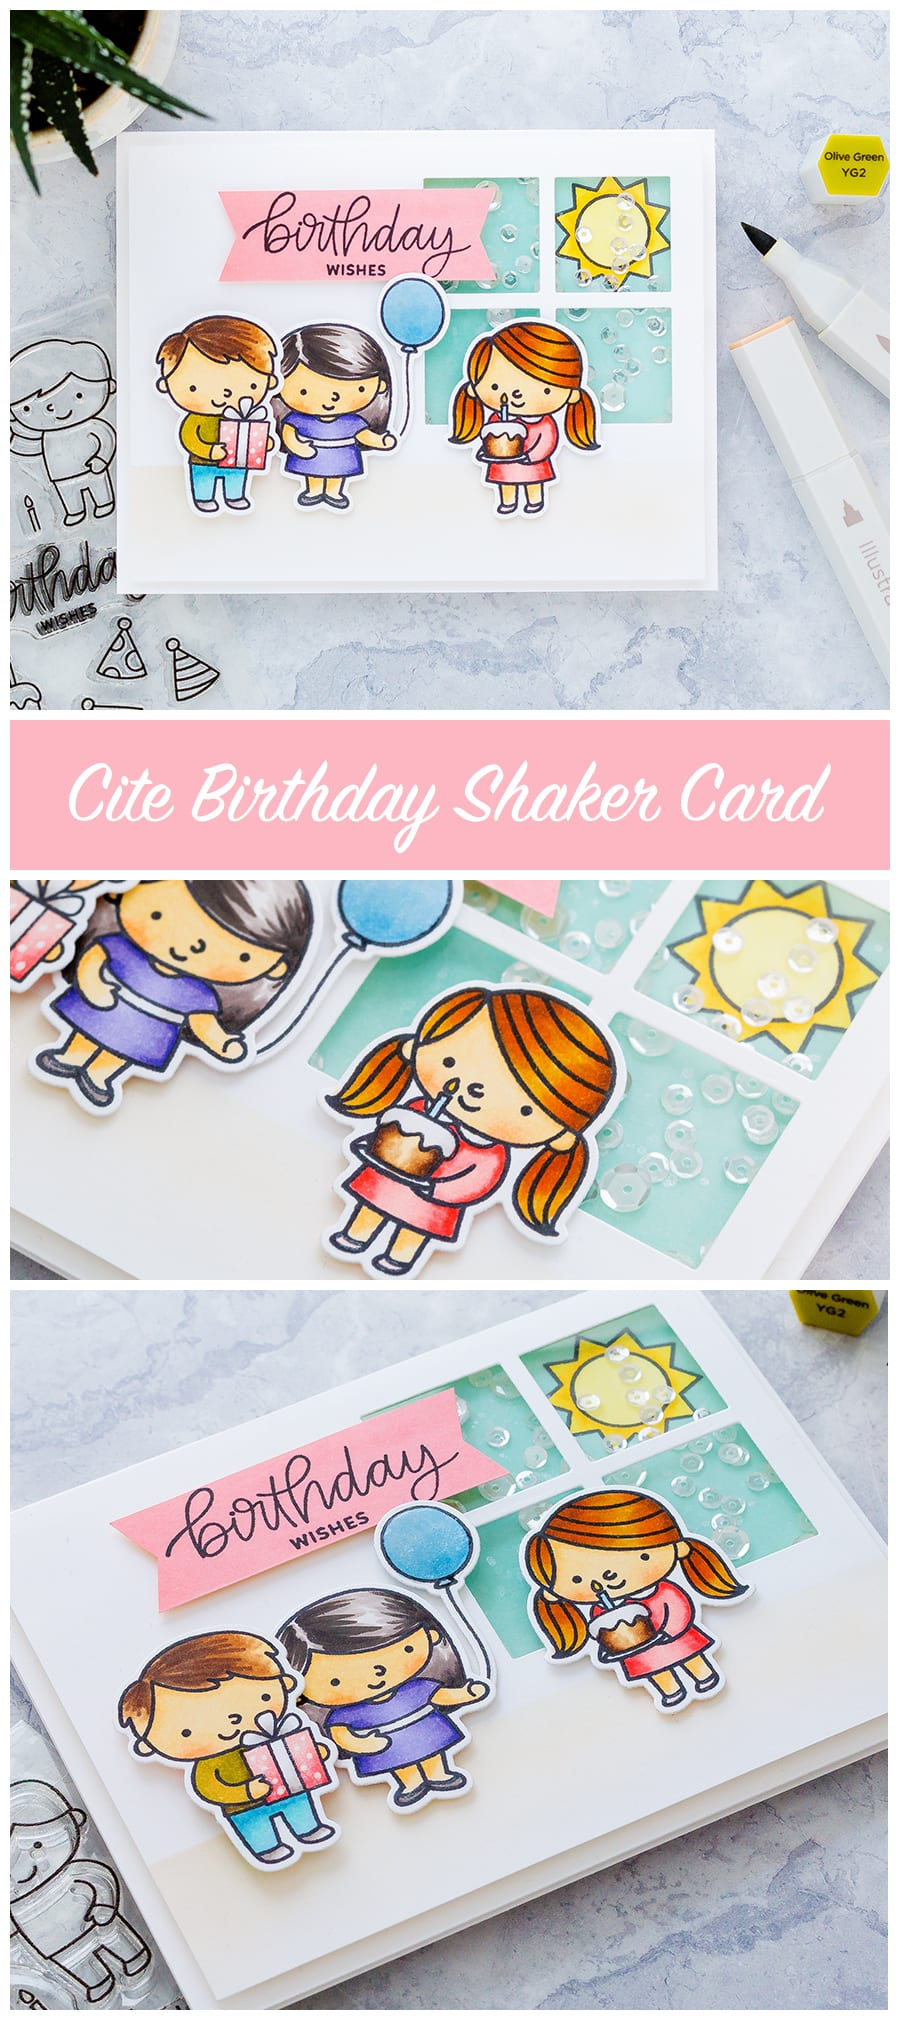 Birthday shaker handmade card by Debby Hughes using the new Birthday Friends set from Pretty Pink Posh. Find out more here: http://limedoodledesign.com/2018/01/shakin-it-up-for-pretty-pink-poshs-4th-birthday/